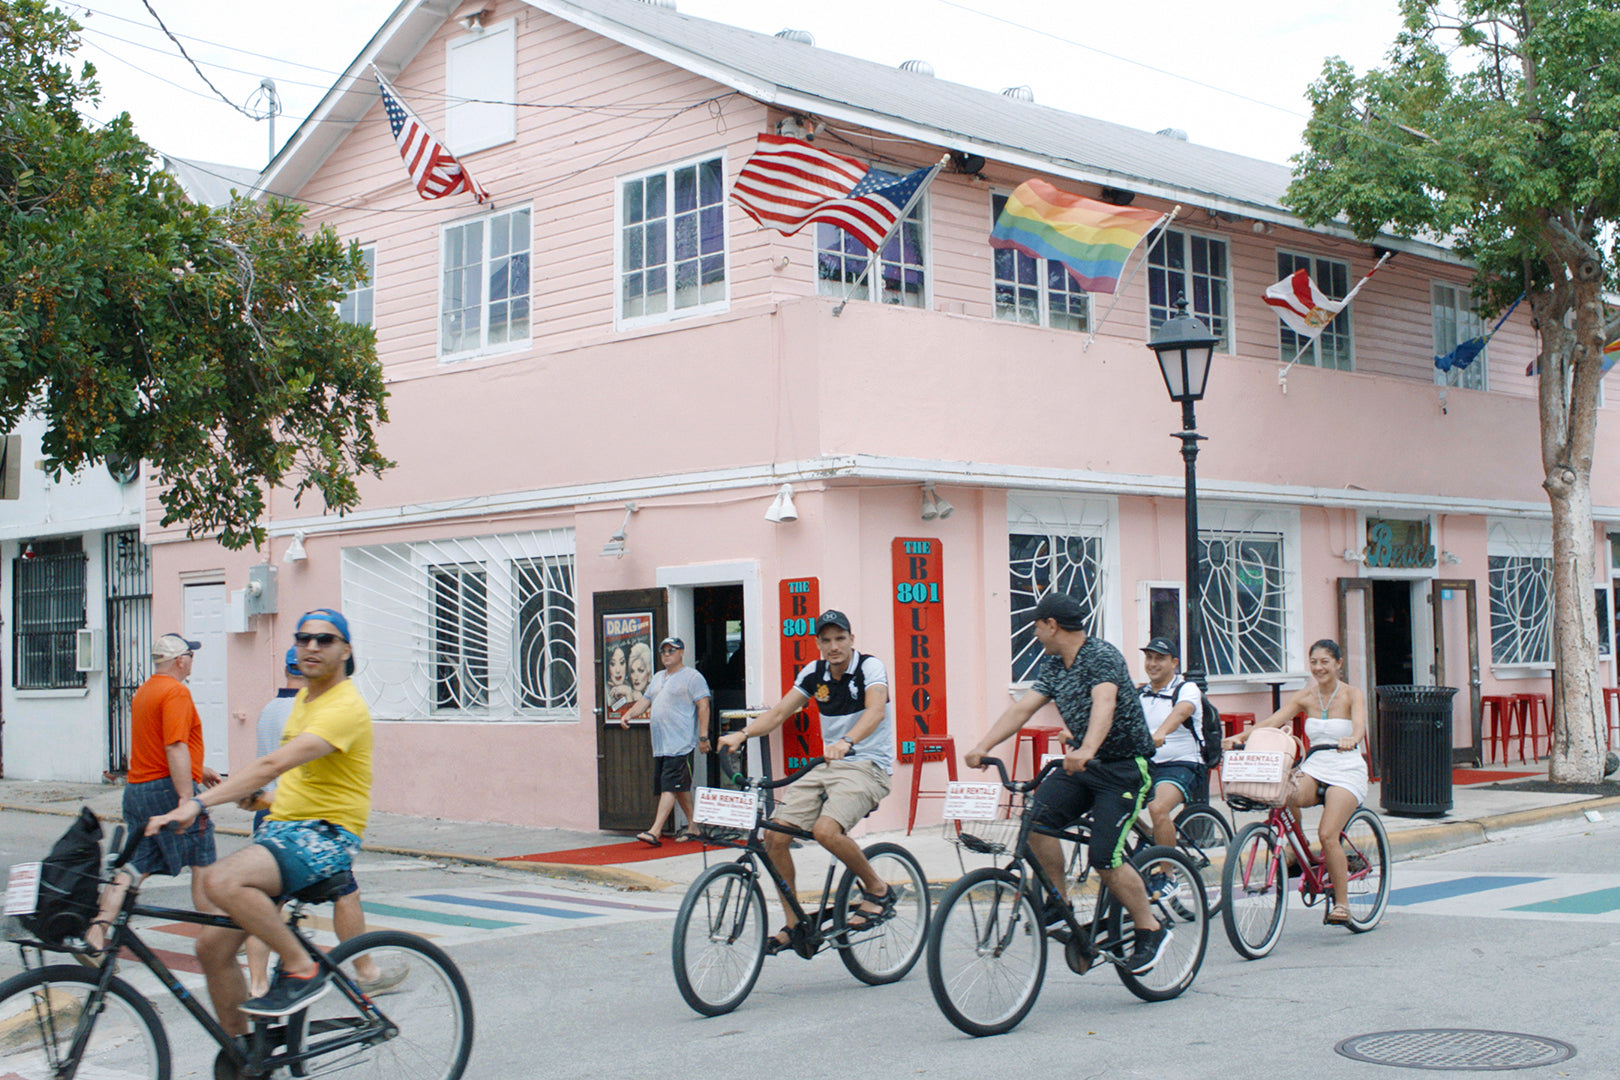 A group of people cycle past a pink building in Key West, Florida